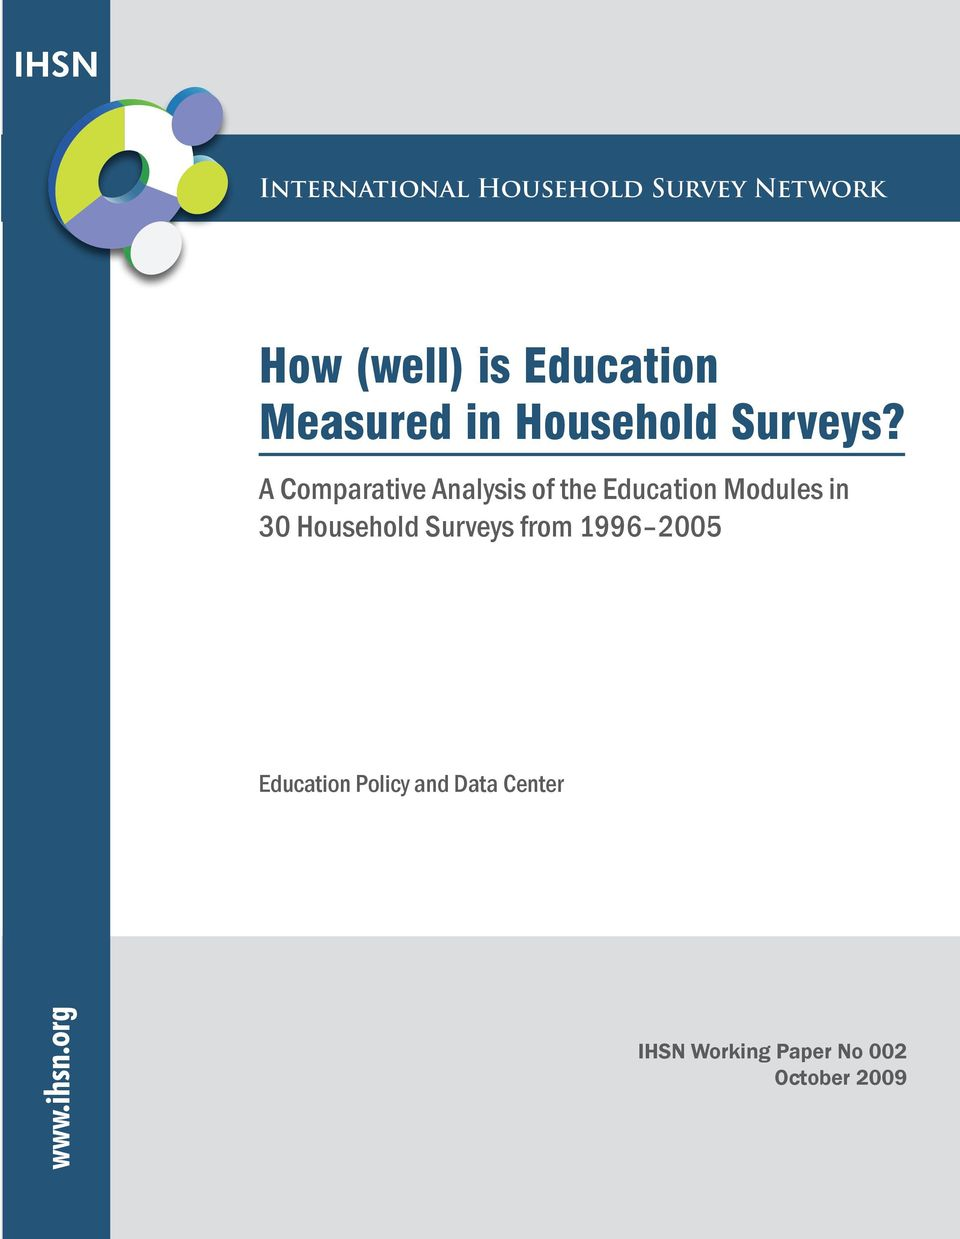 A Comparative Analysis of the Education Modules in 30 Household